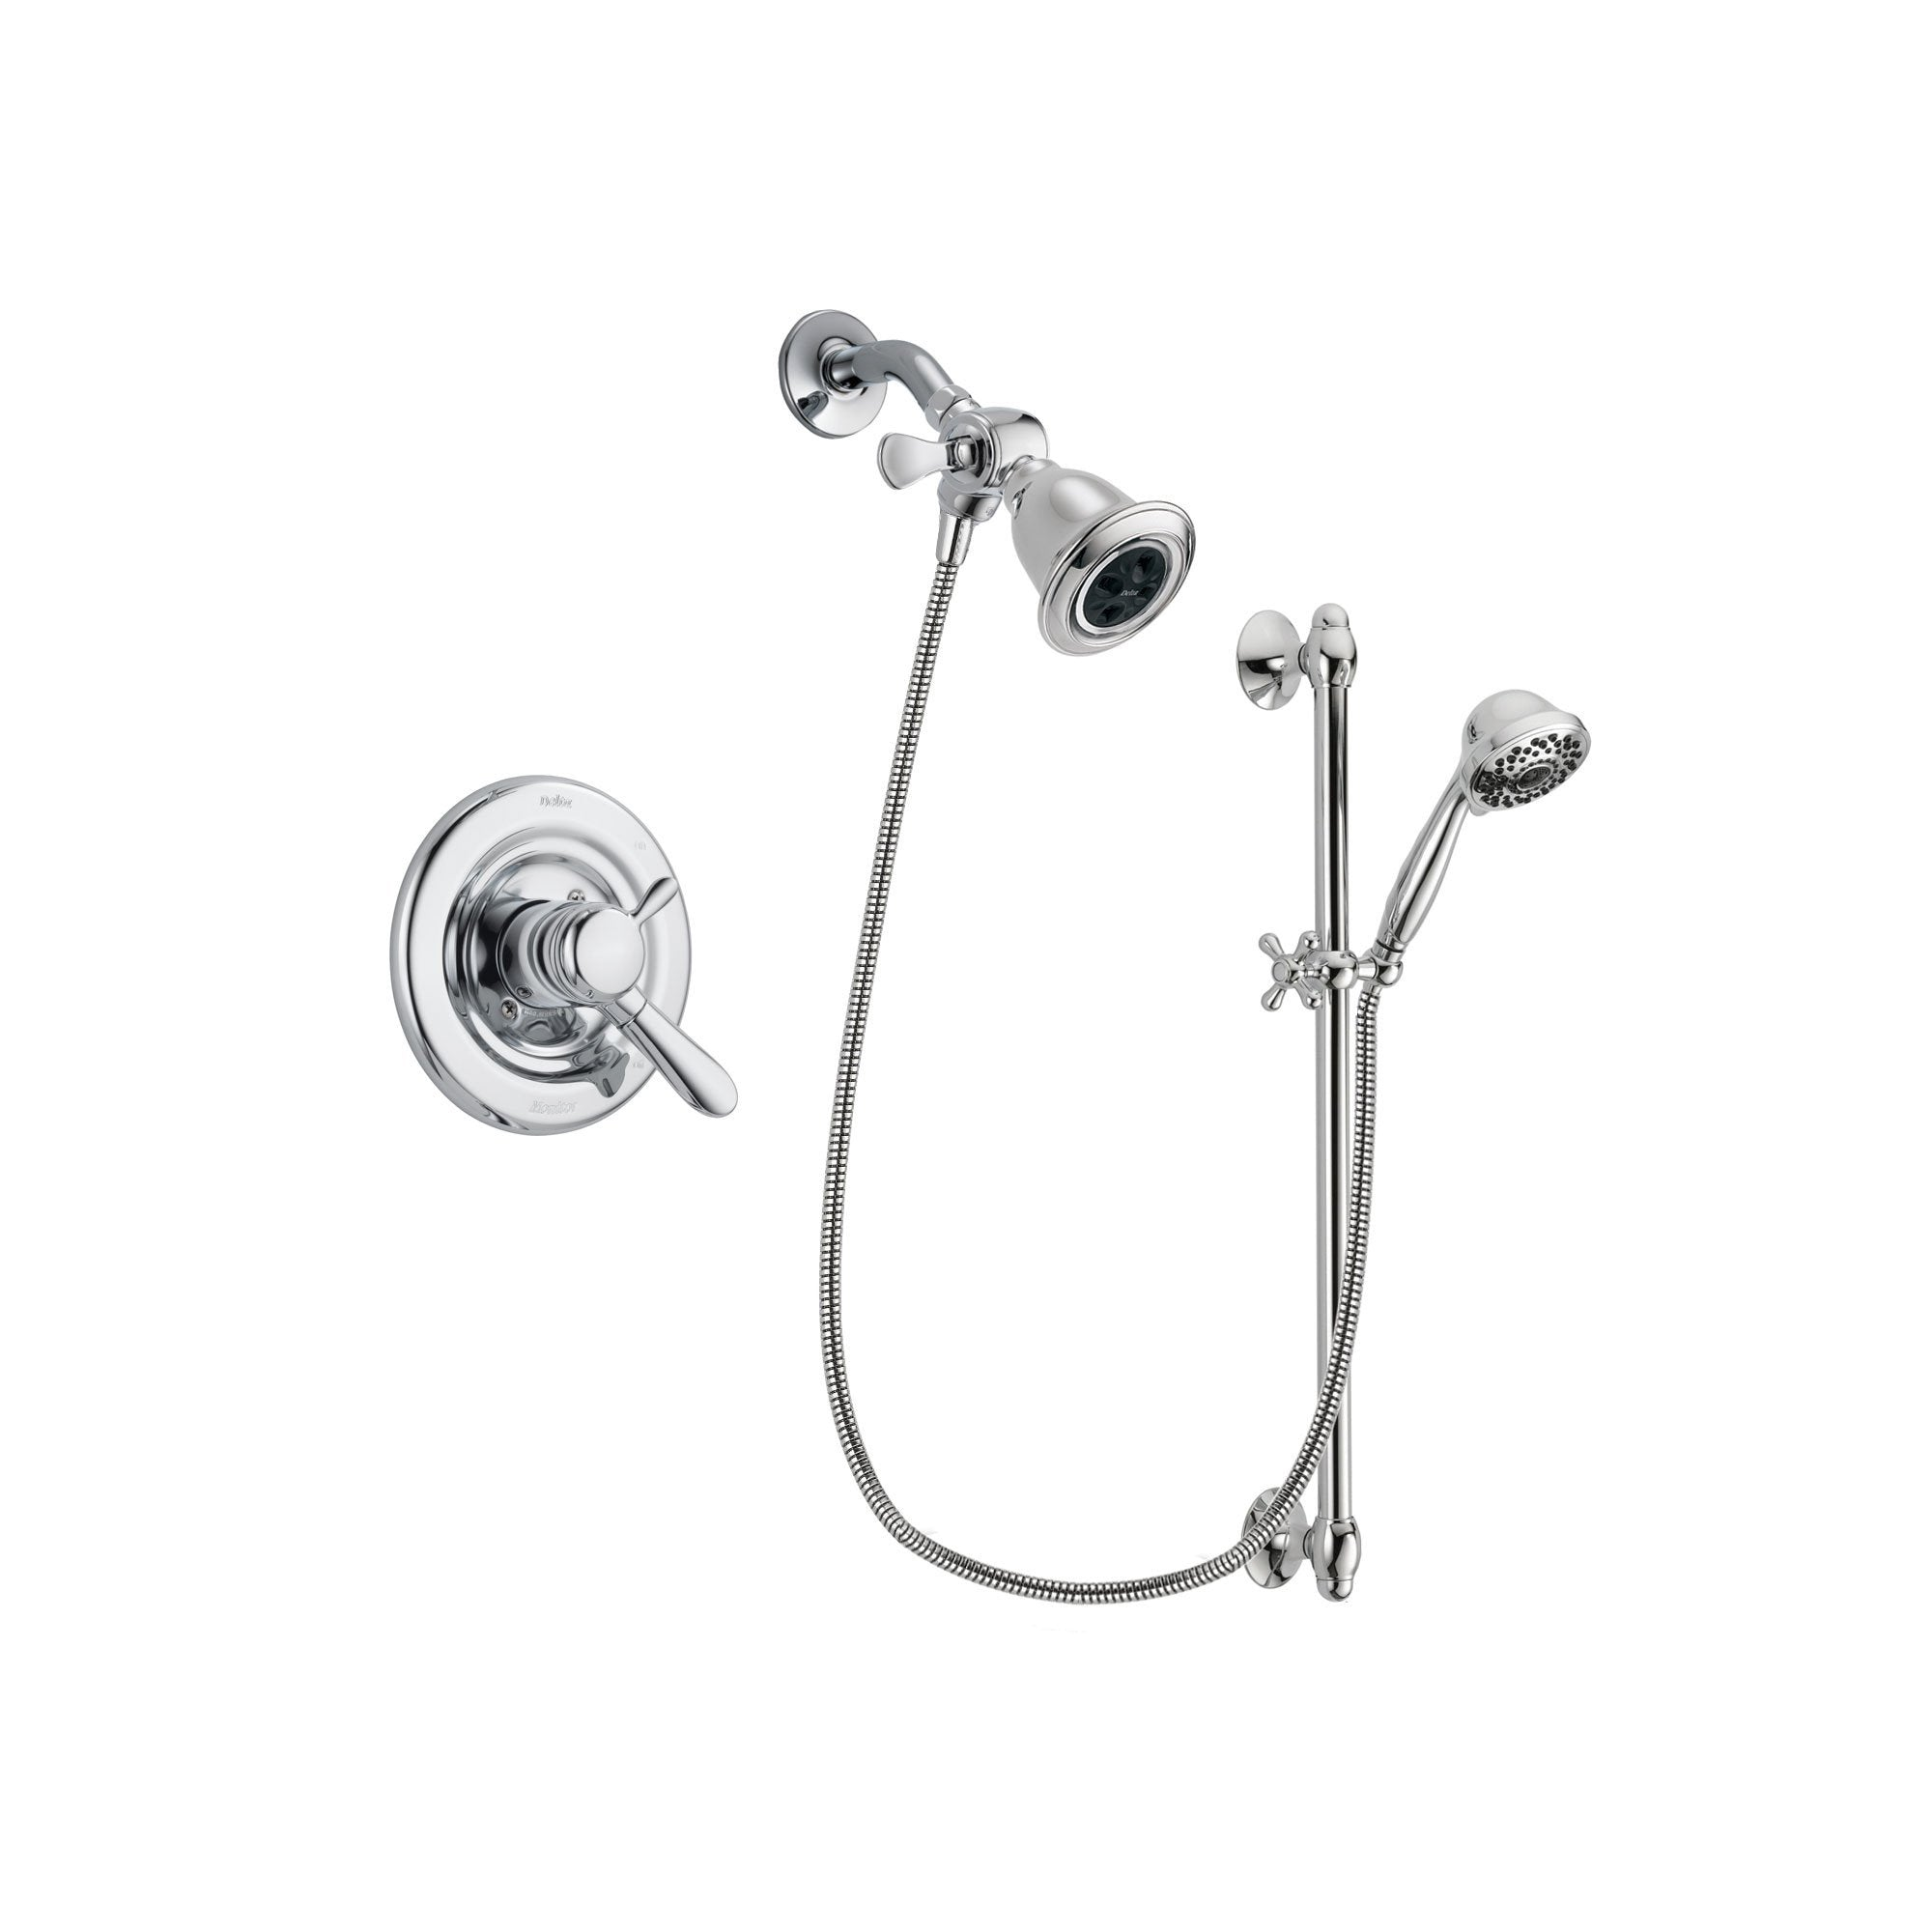 Delta Lahara Chrome Shower Faucet System w/ Shower Head and Hand Shower DSP0616V